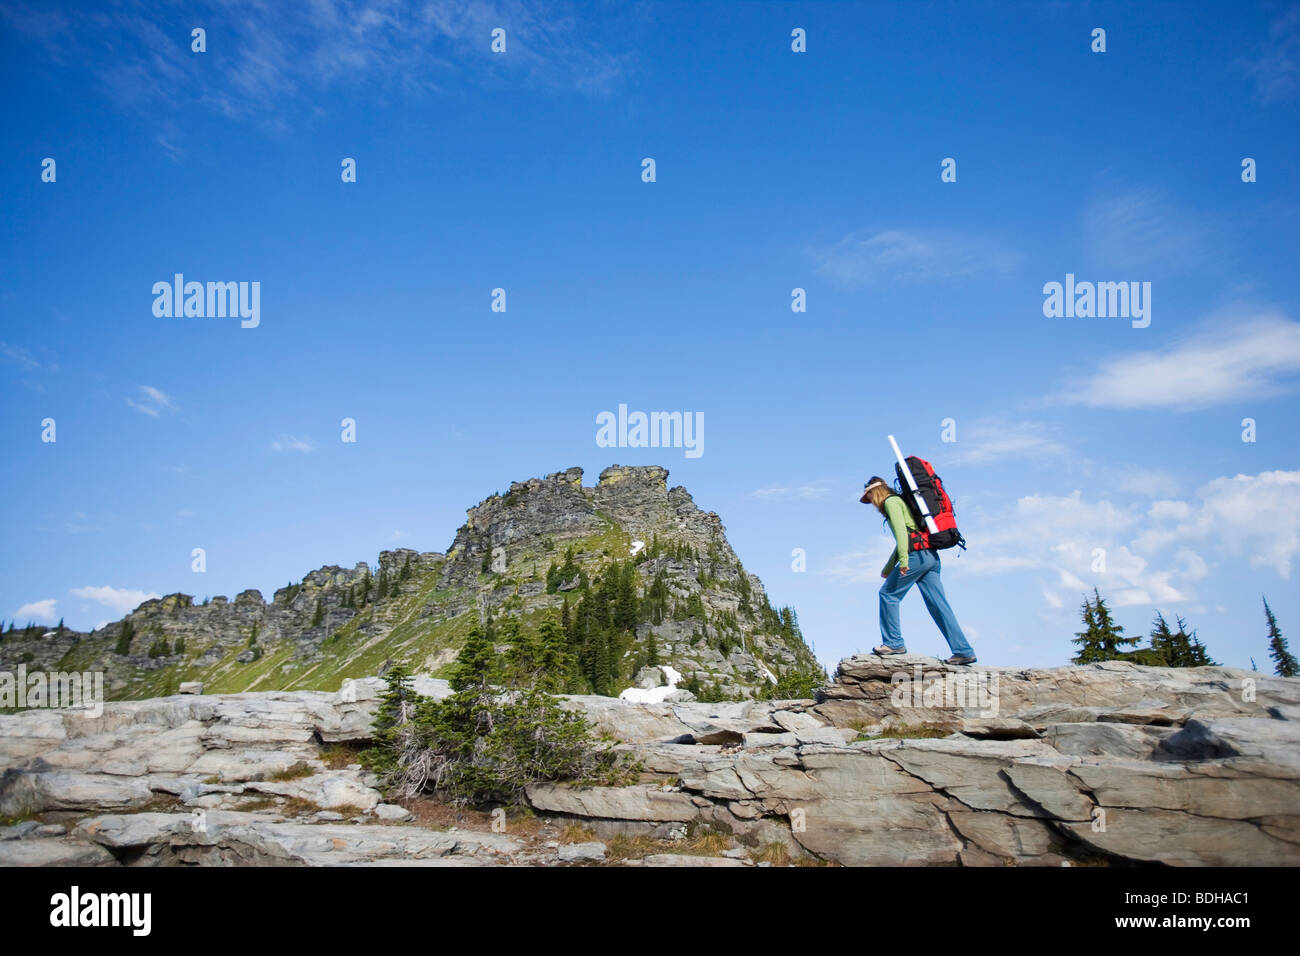 Woman backpacking in a wilderness area under a bright blue sky. - Stock Image